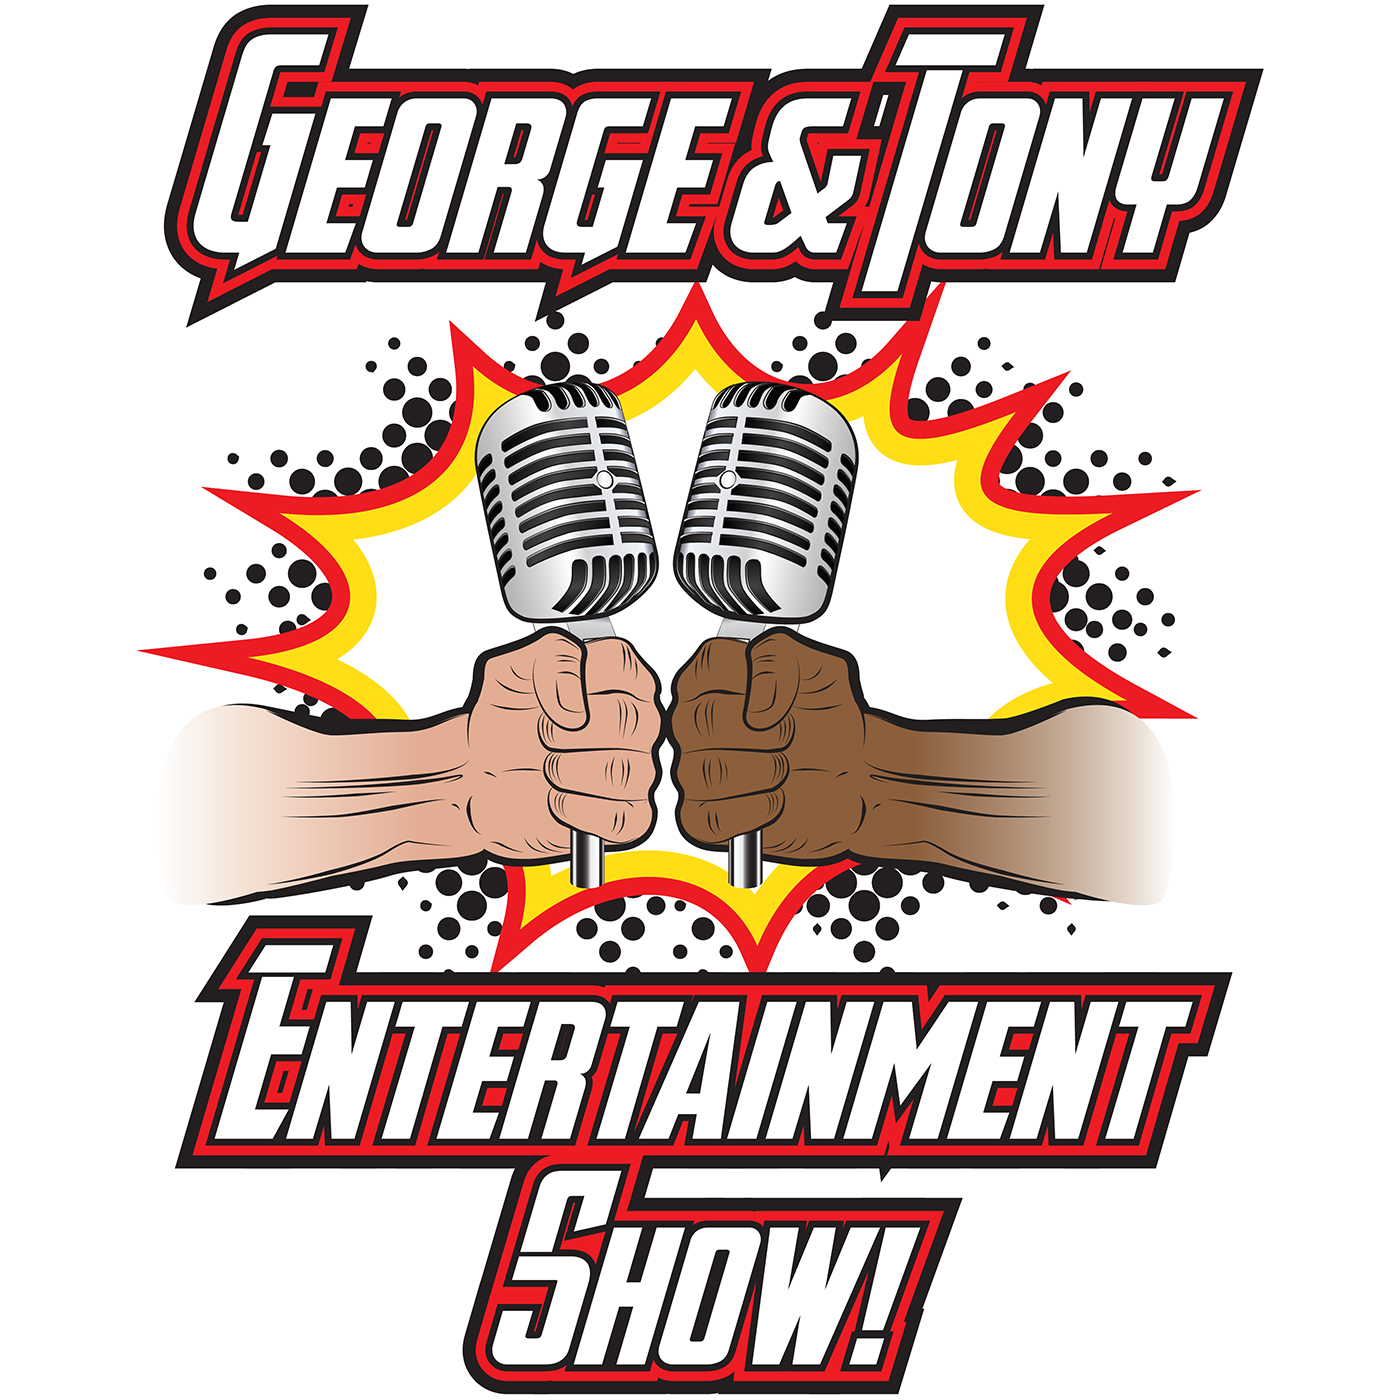 George and Tony Entertainment Show #64